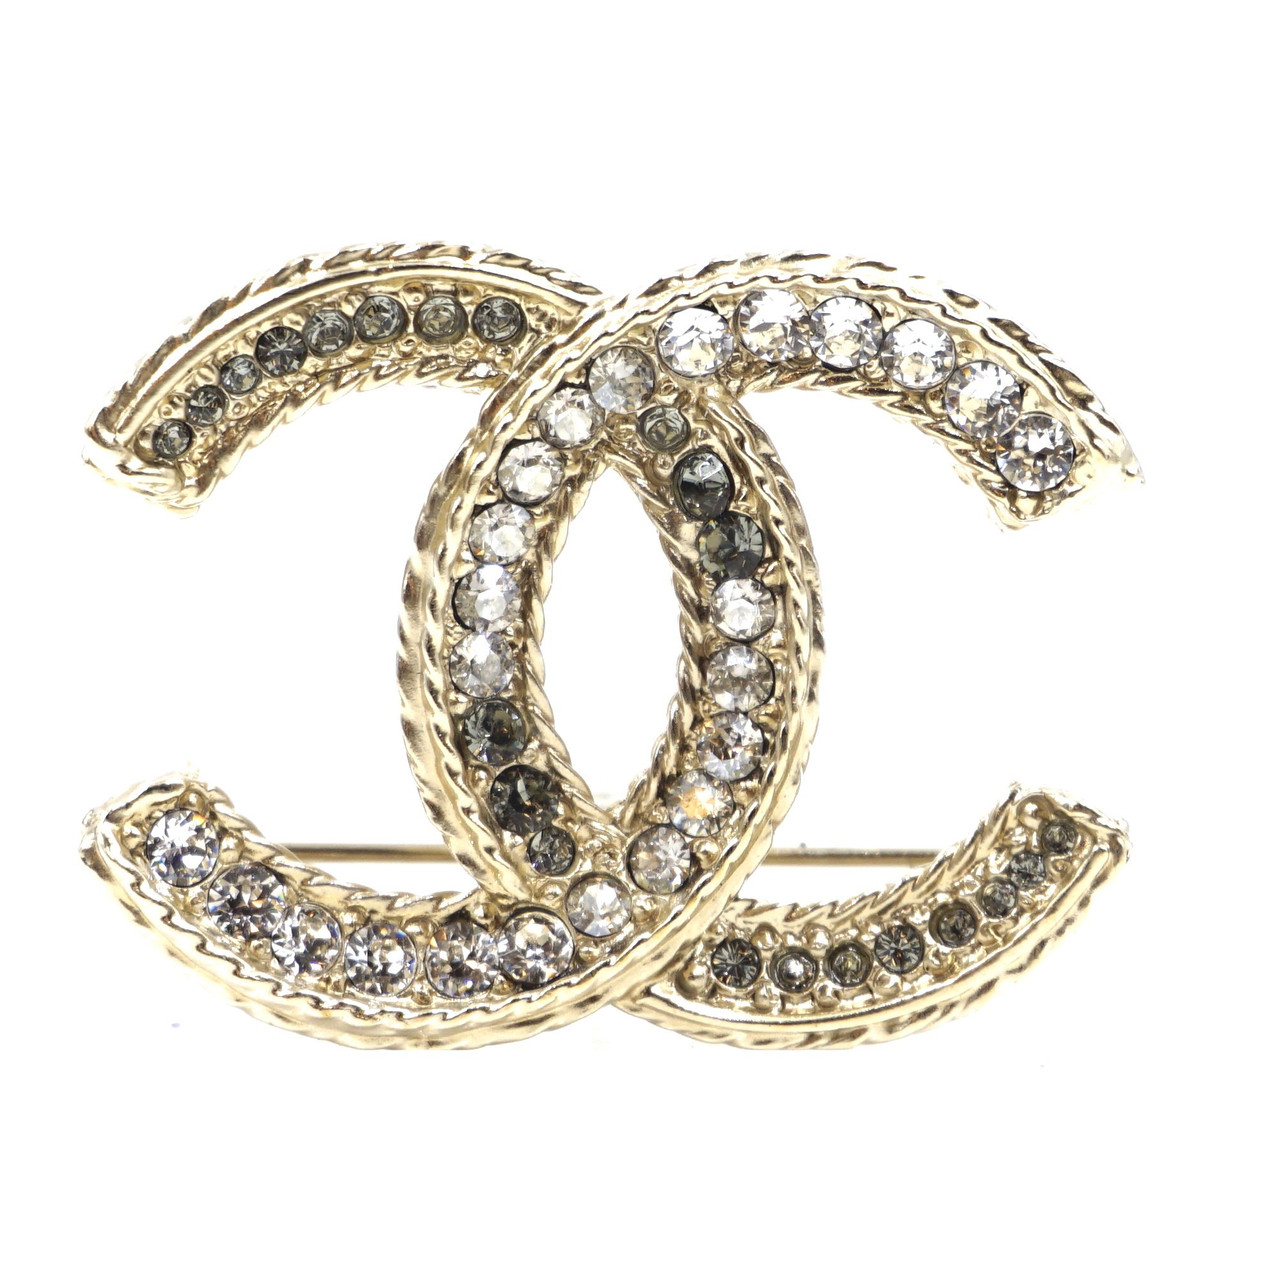 Shop Authentic, Luxury Brand Jewelry on Consignment | LePrix